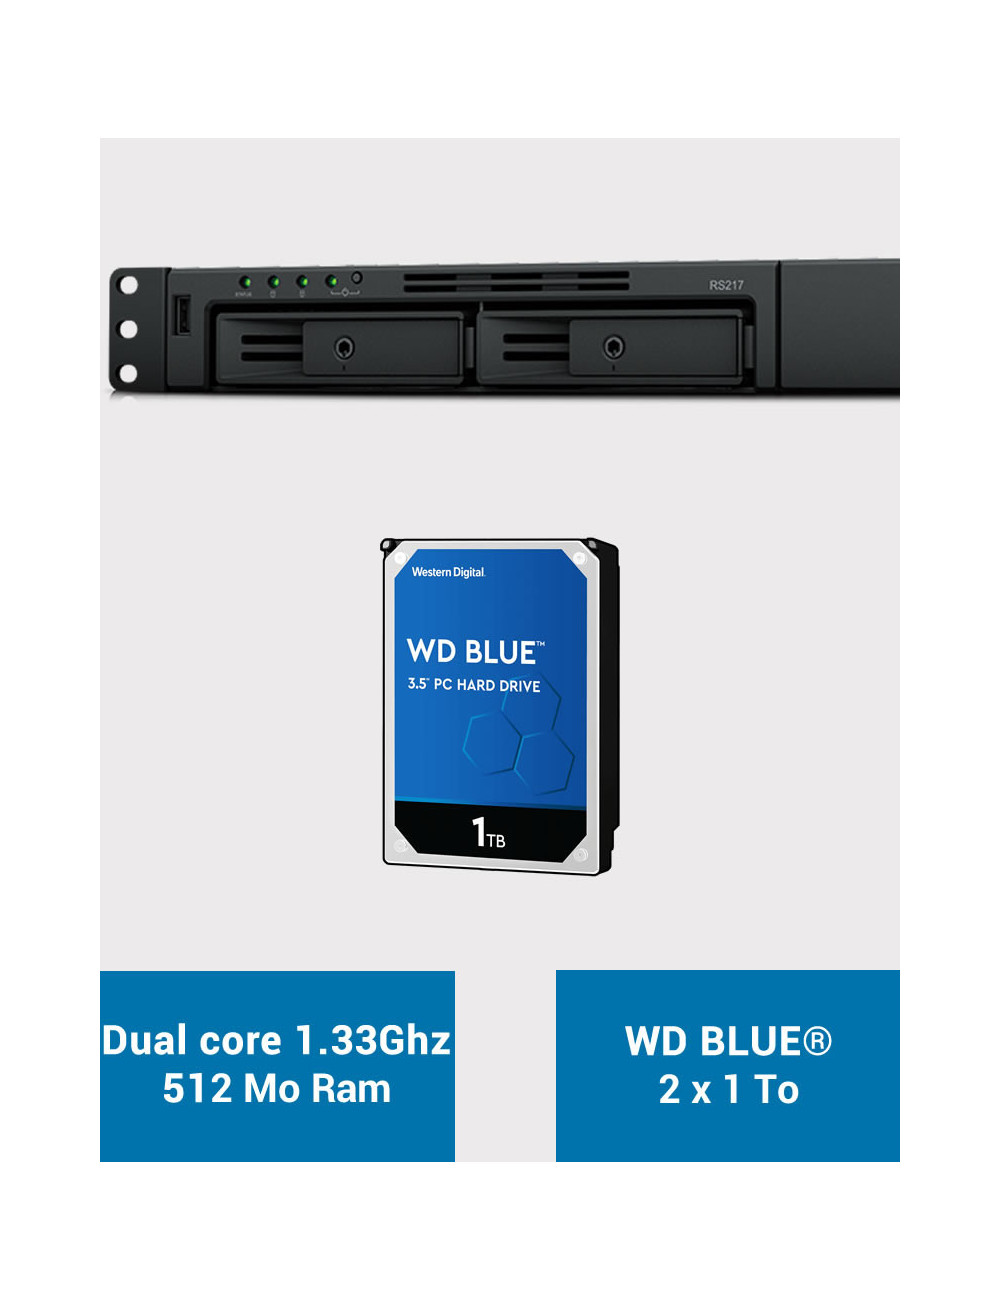 Synology RS217 NAS Server WD BLUE 2TB (2x1TB)